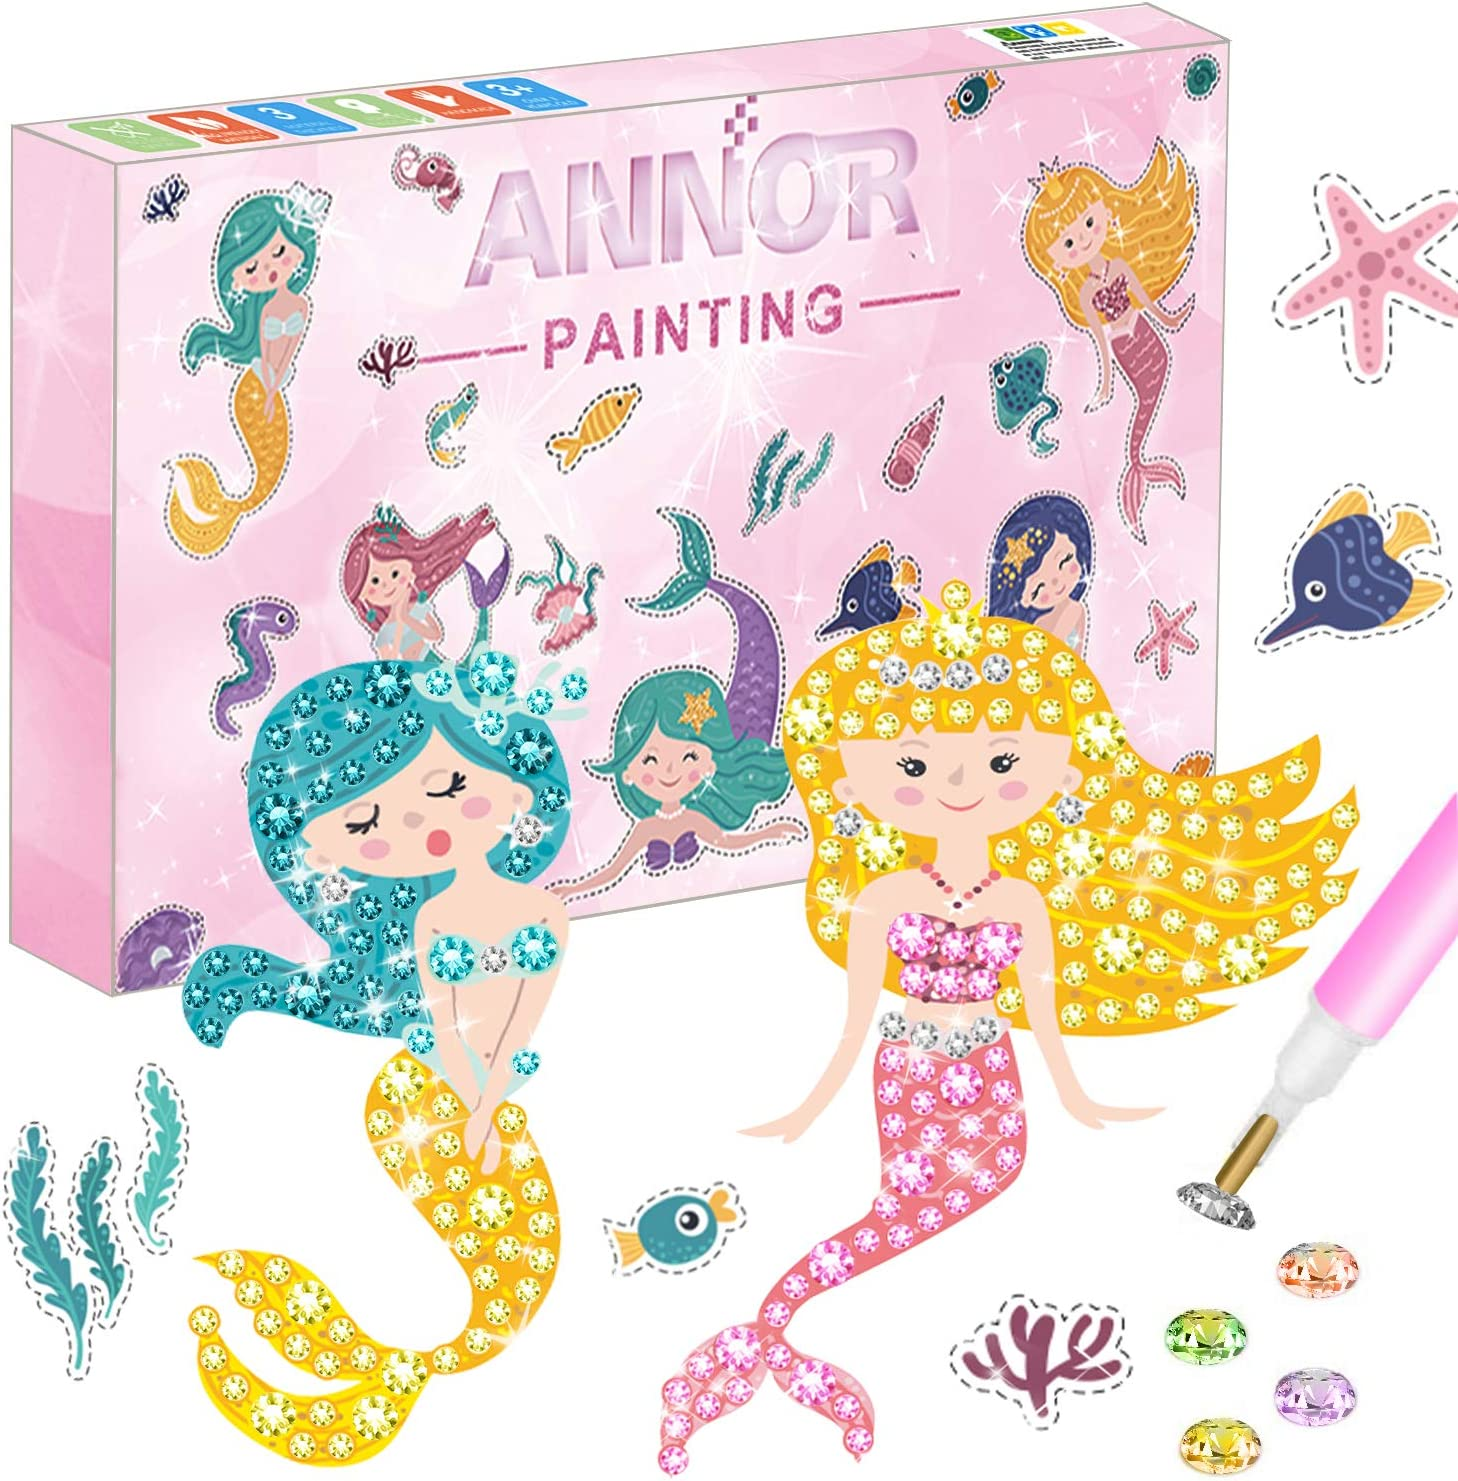 Boys Diamond Painting Stickers DIY Arts and Crafts for Girls TOY Life Diamond Painting Kit for Kids Kids Gem Art Kits Includes 26 Cute Diamond Stickers and Accessories Beginners